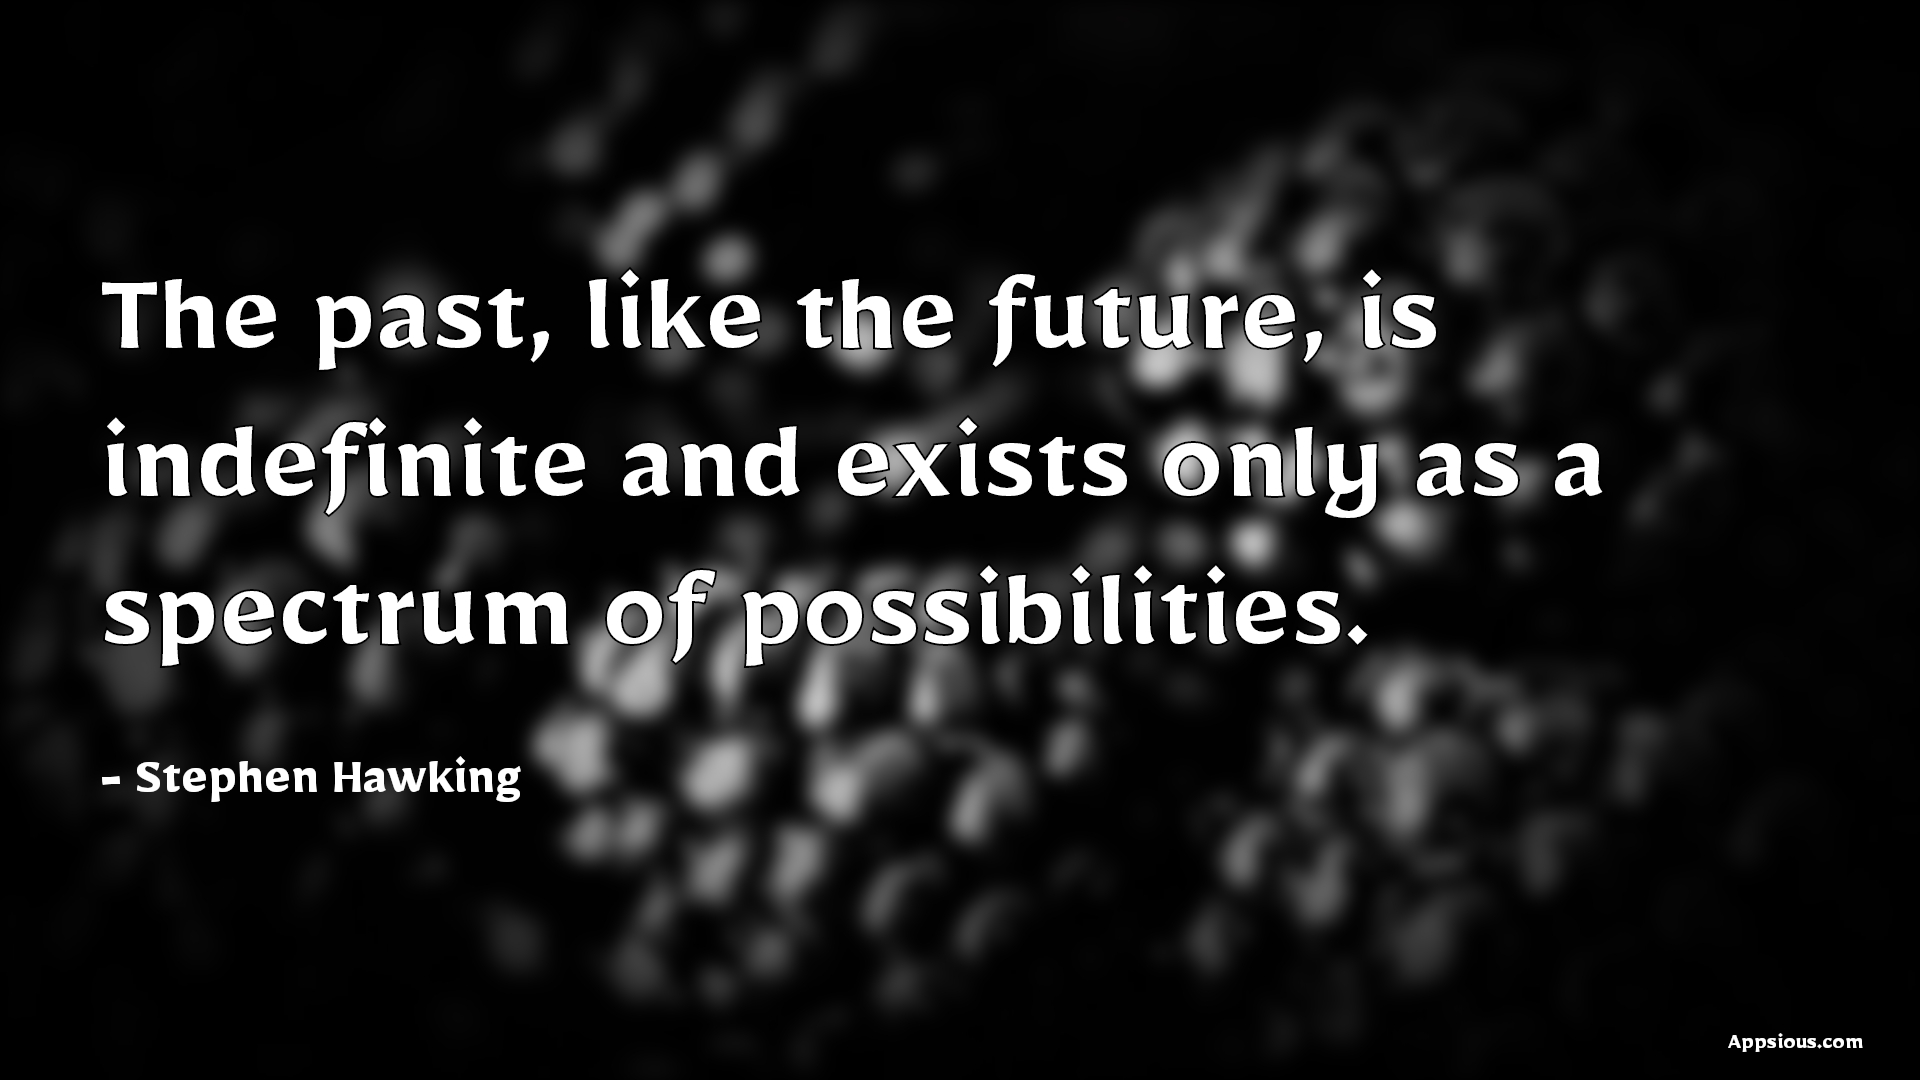 The past, like the future, is indefinite and exists only as a spectrum of possibilities.